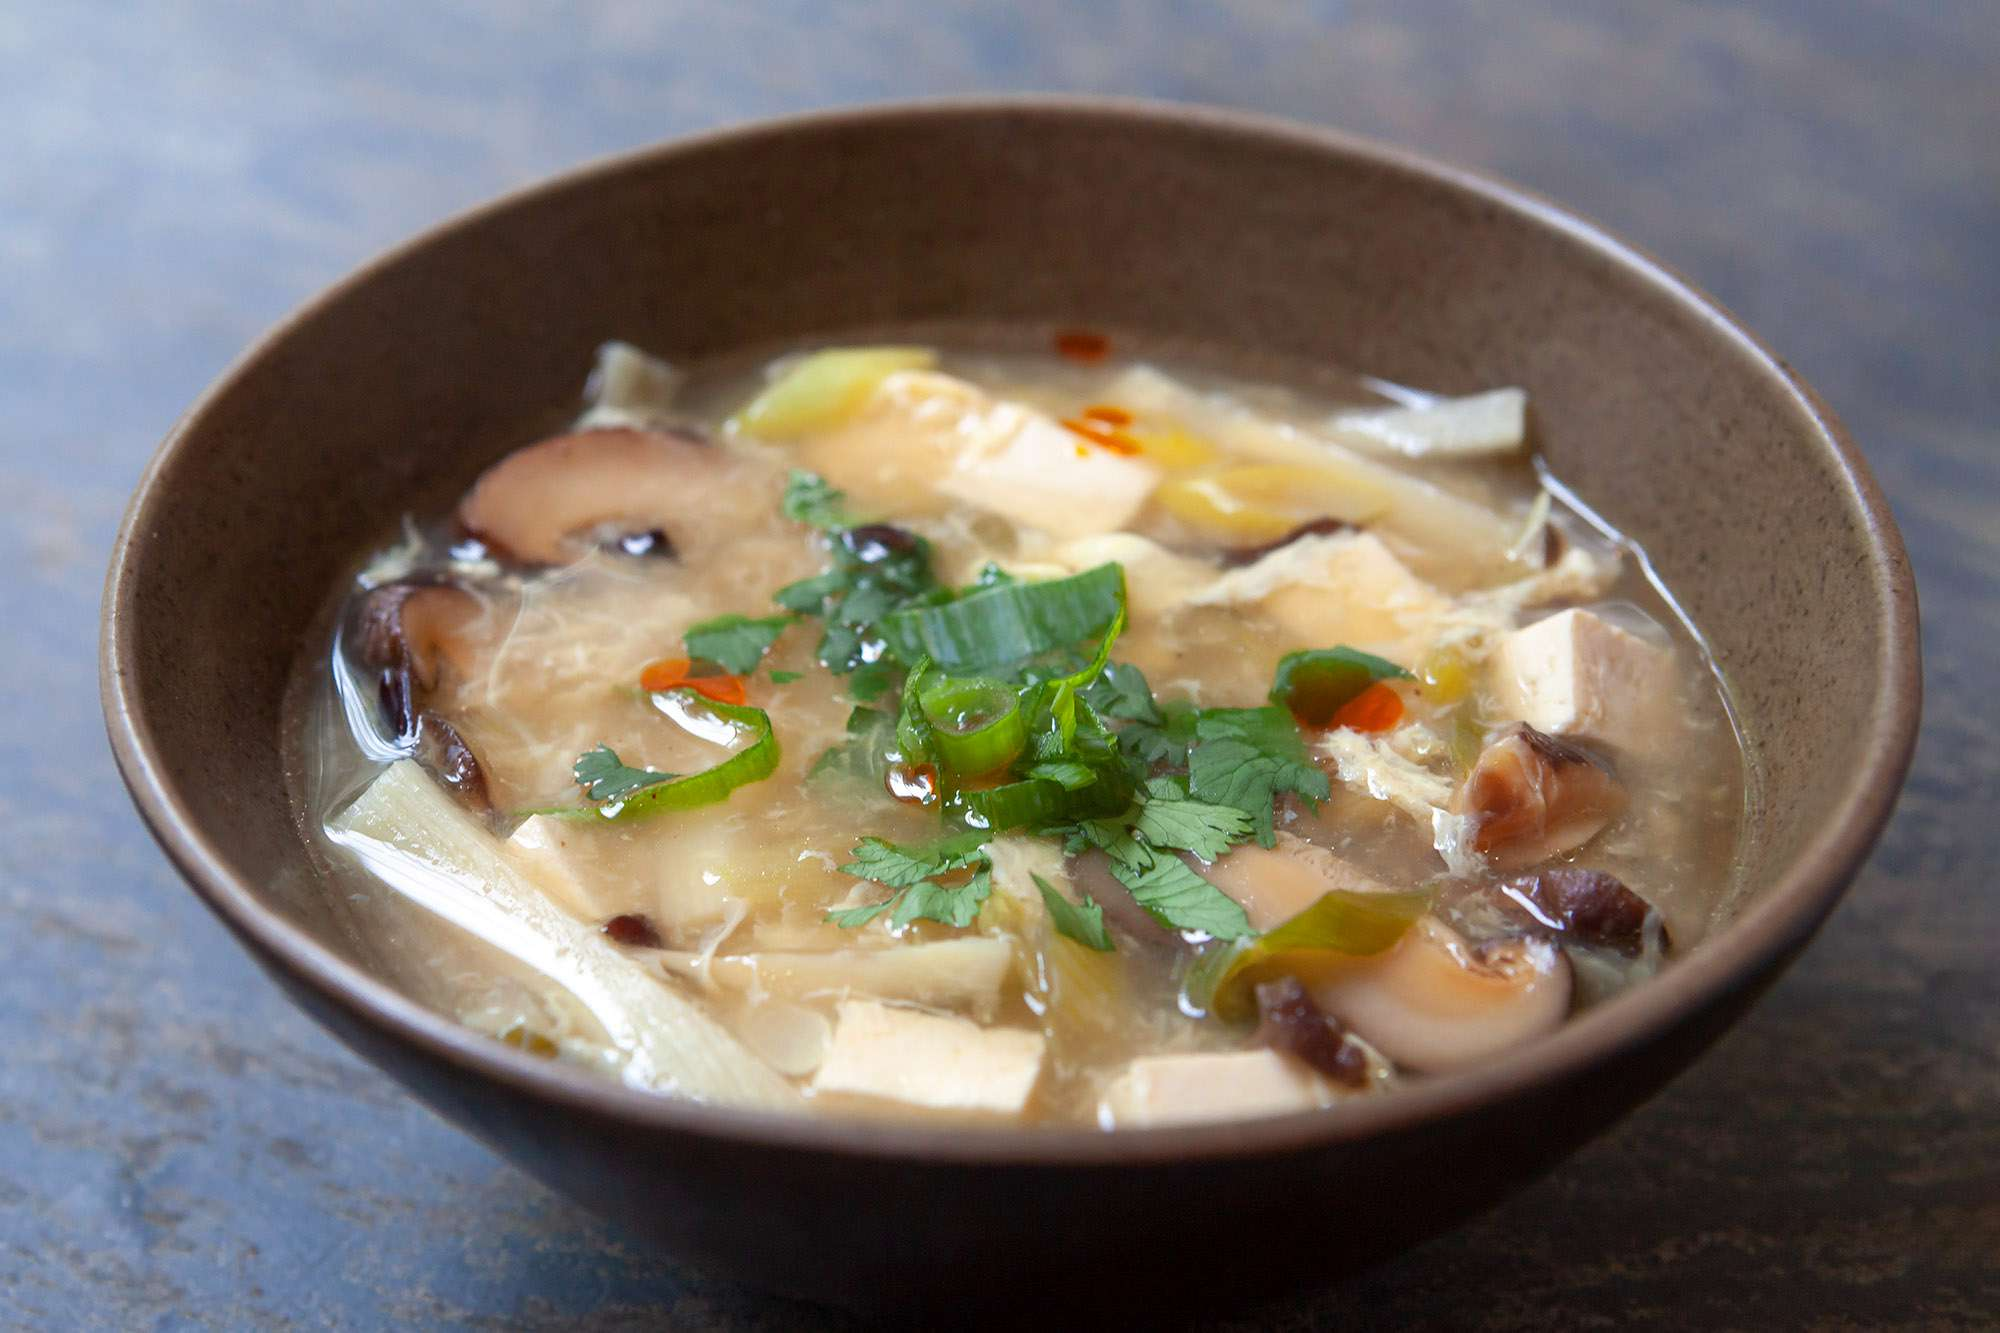 Sweet and sour soup in a bowl.